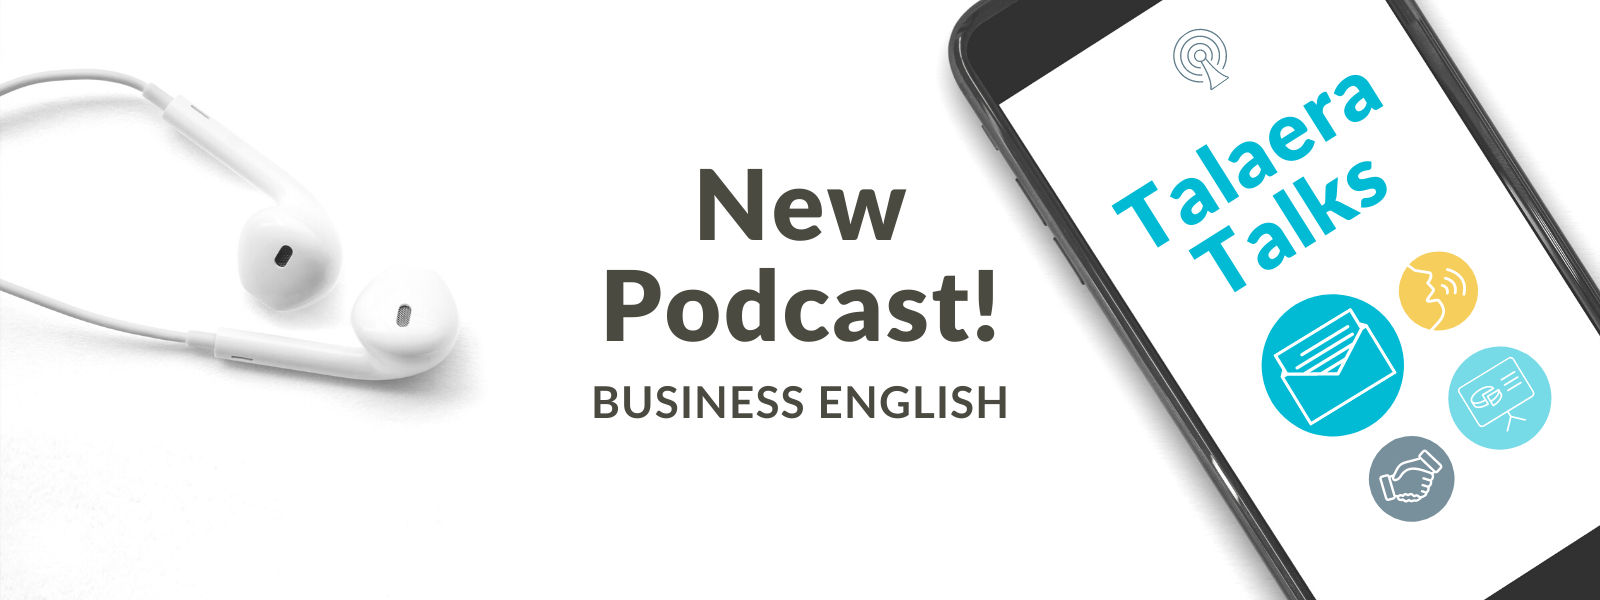 Business English Communication Podcast Talaera Talks